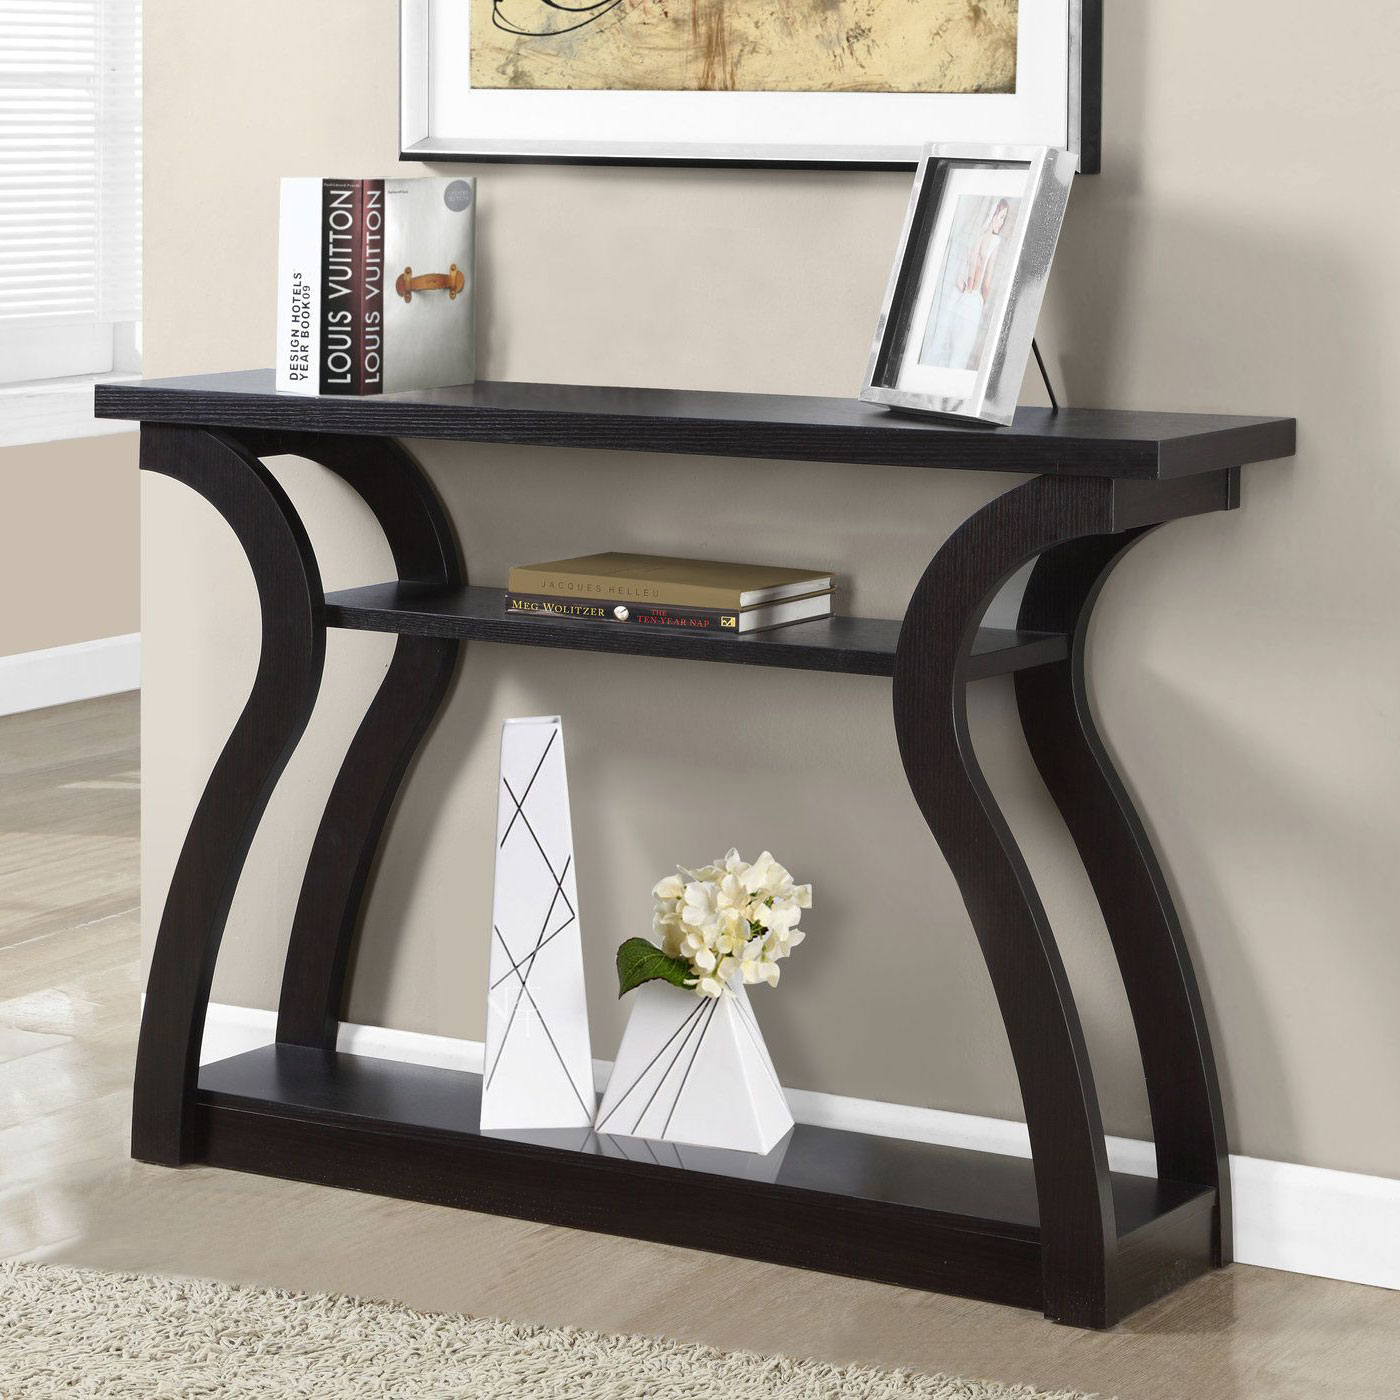 monarch accent table cappuccino hall console dale tiffany chandelier sofa side end bedroom furniture concrete and glass coffee commercial patio target sleeper black gray tables